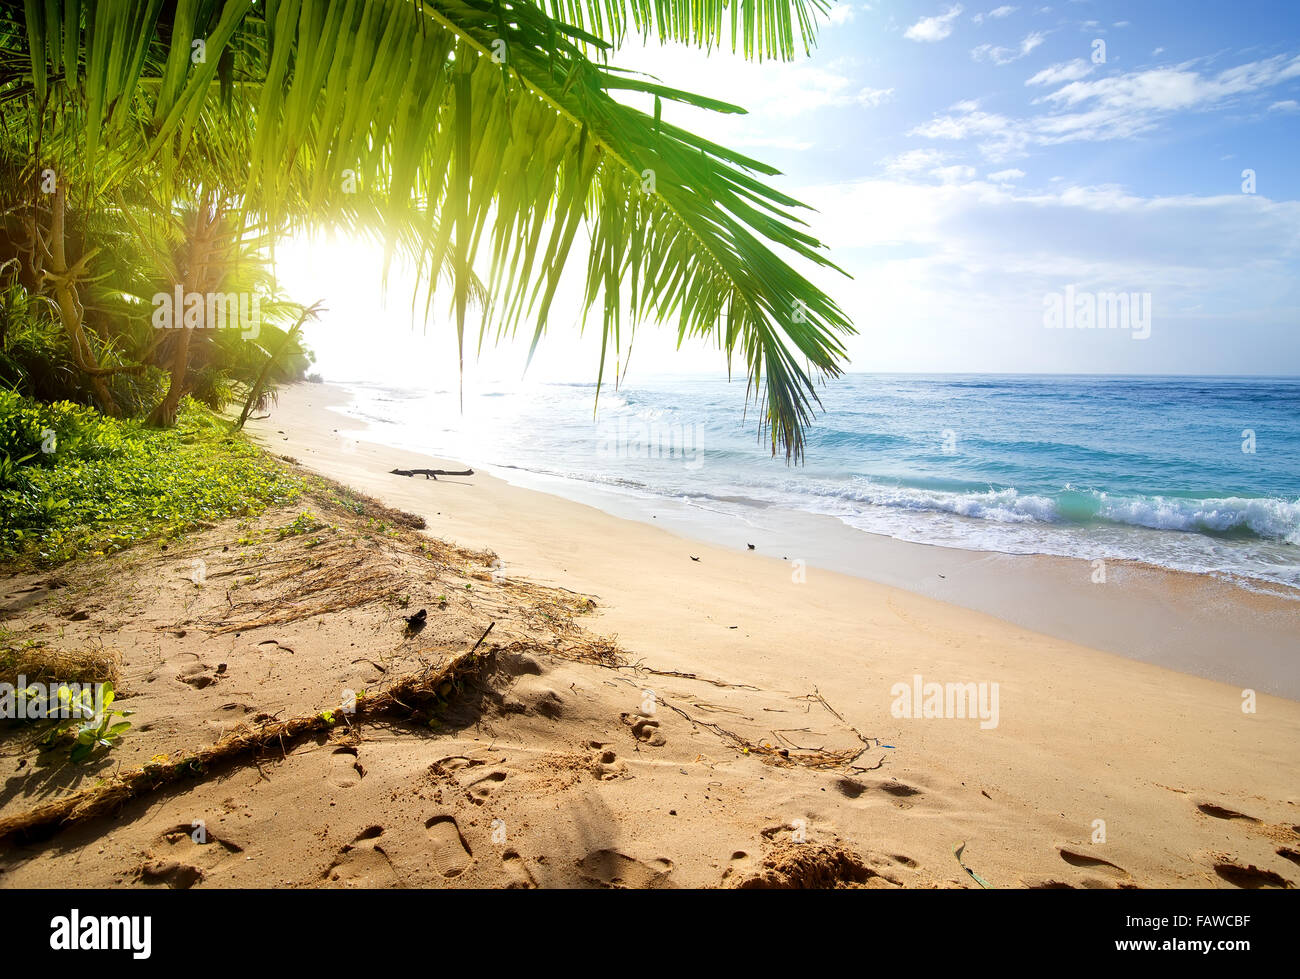 Sandy beach with green palm trees near ocean - Stock Image